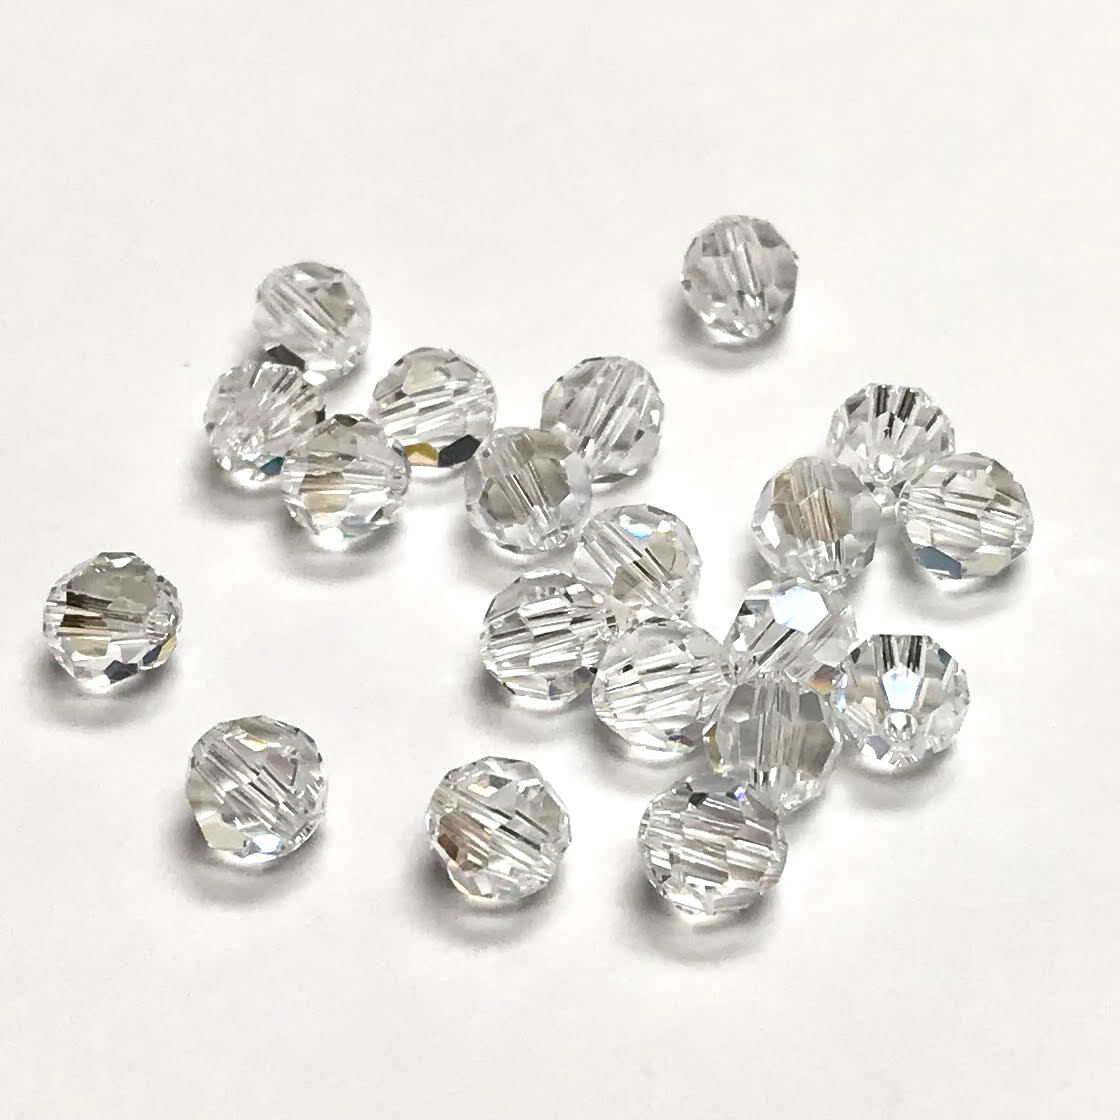 Swarovski Elements, Faceted Round 5000-Crystal, 8mm 1 buc